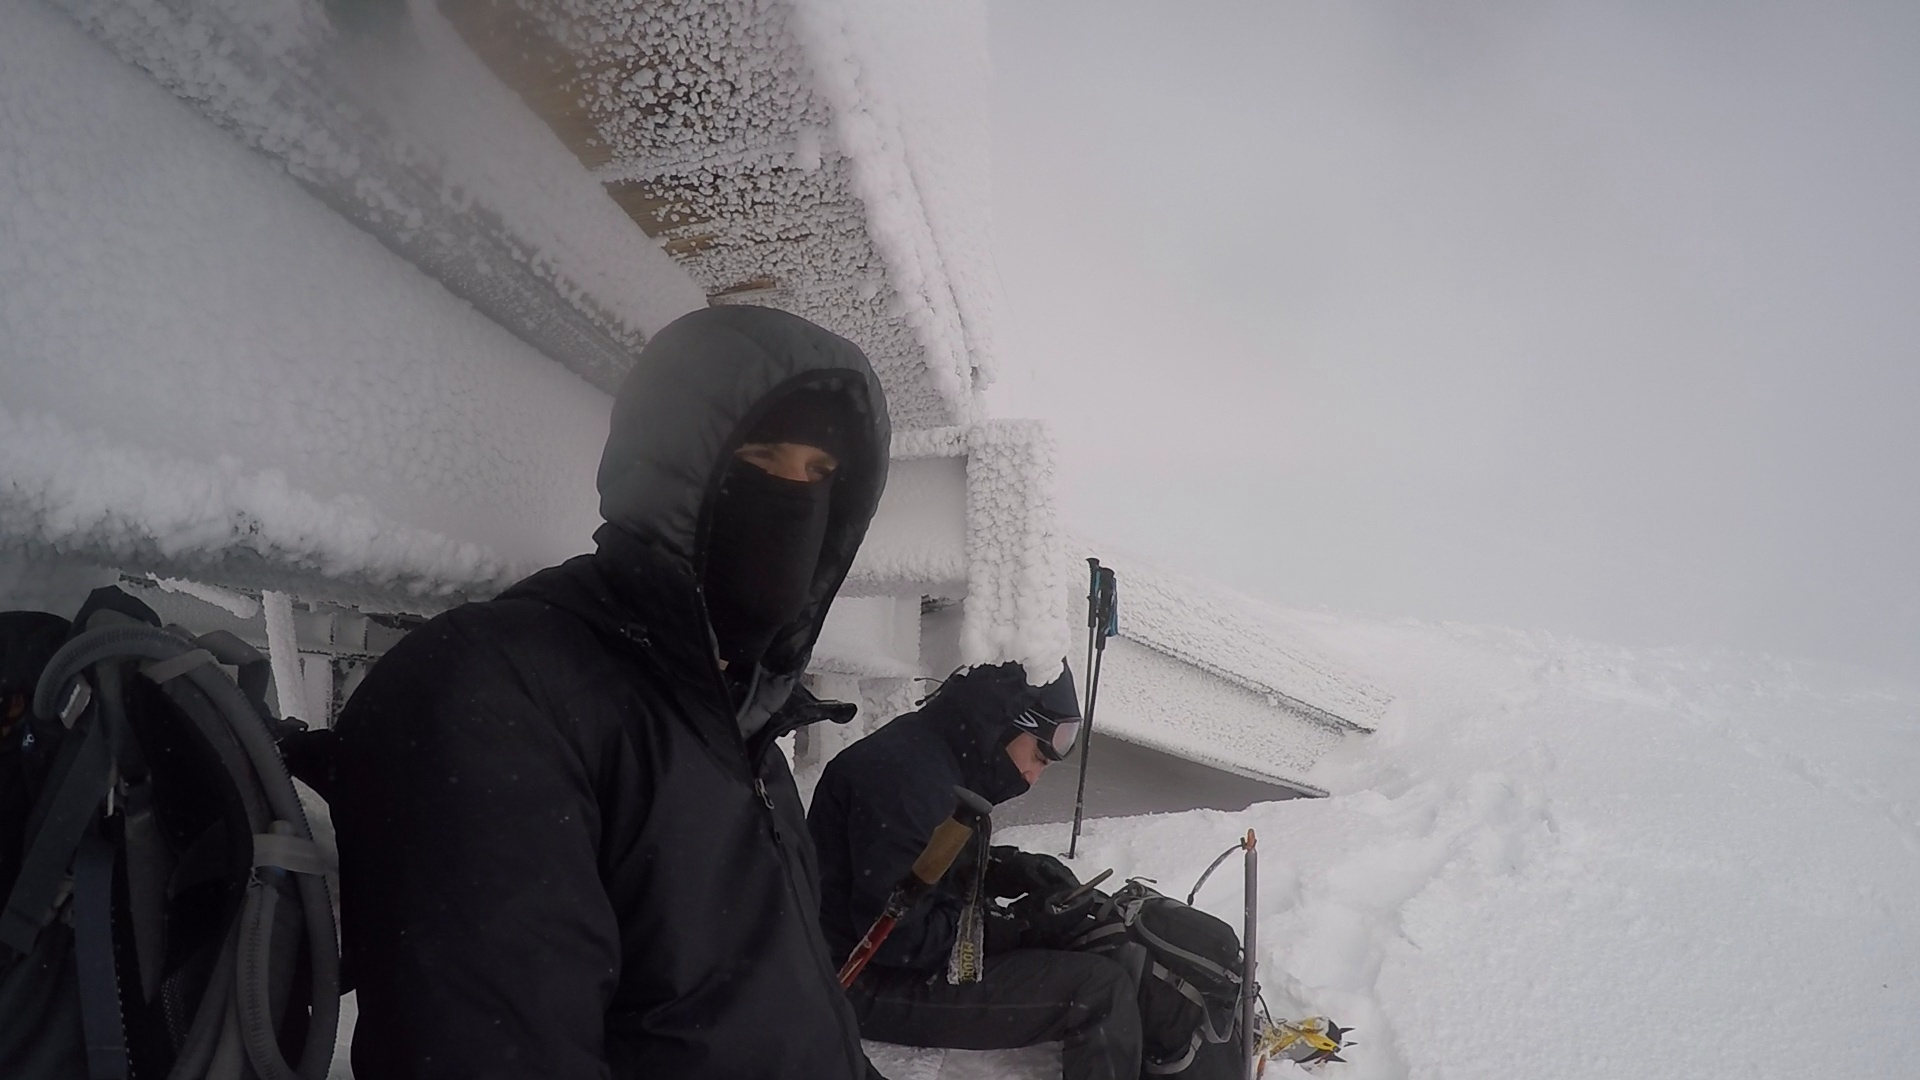 Photo taken December 2015 - We picked a day to hike to the end of Palmer Snowfield with low visibility and high winds to get a sense of what relatively bad conditions might feel like.